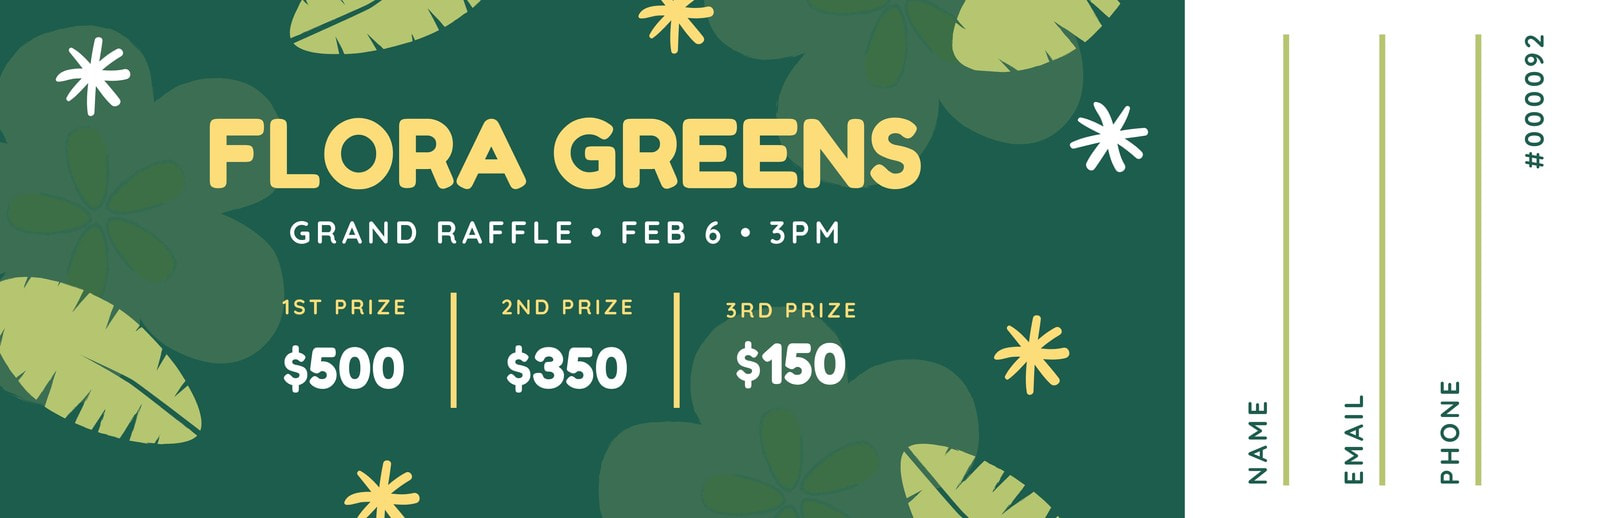 Green Yellow Nature Floral Raffle Ticket